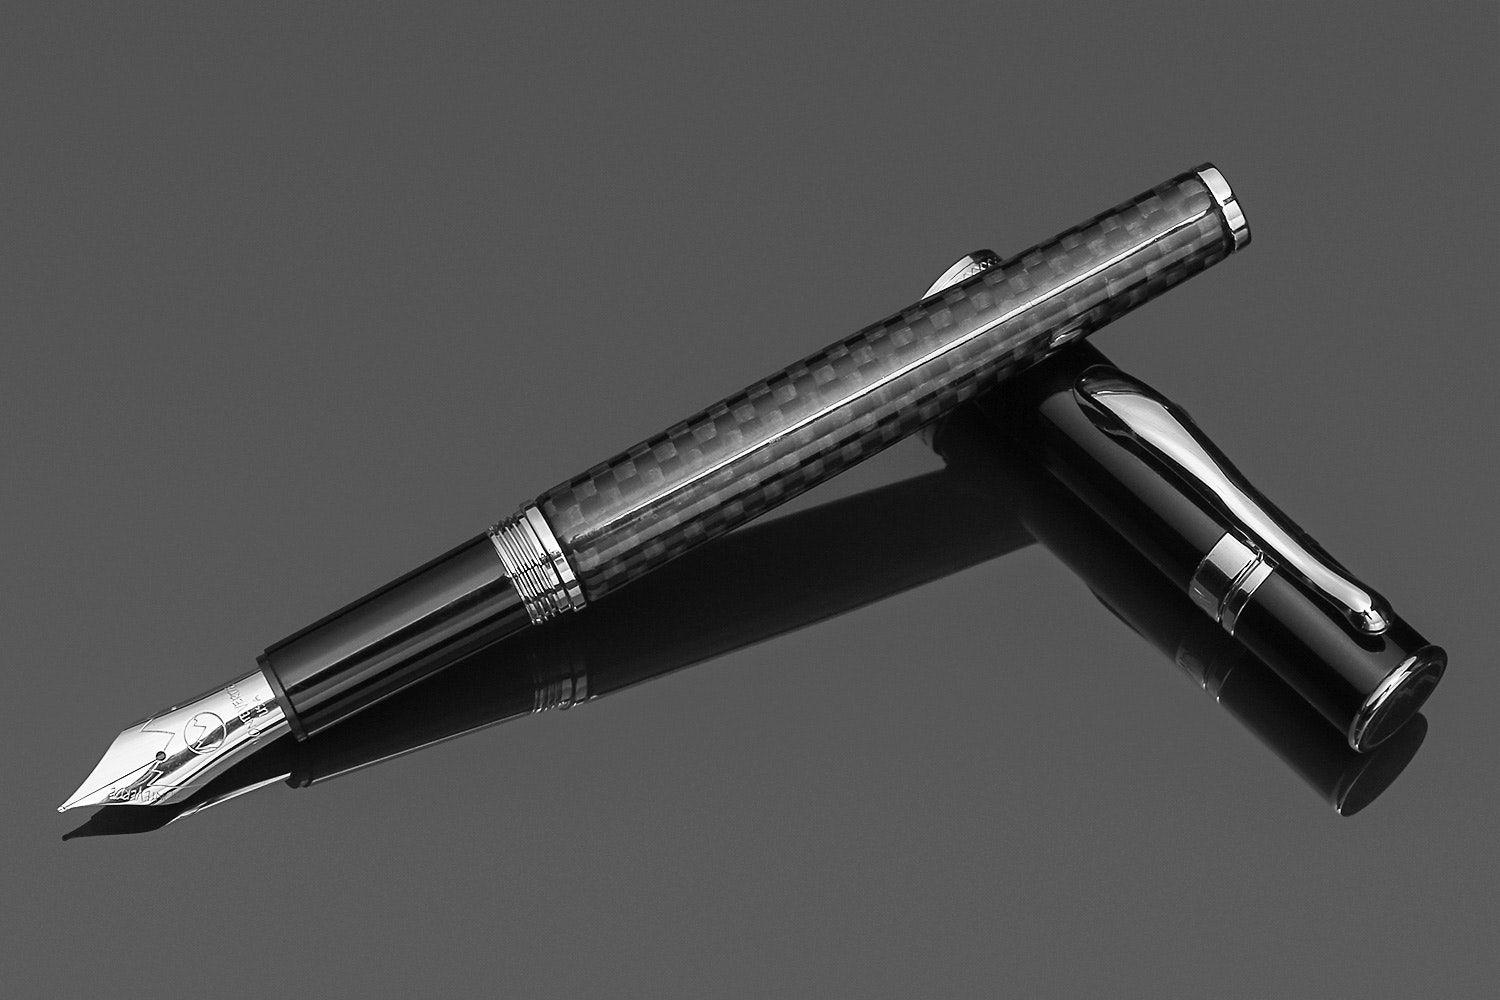 Monteverde Jewelria Carbon Fiber Fountain Pen